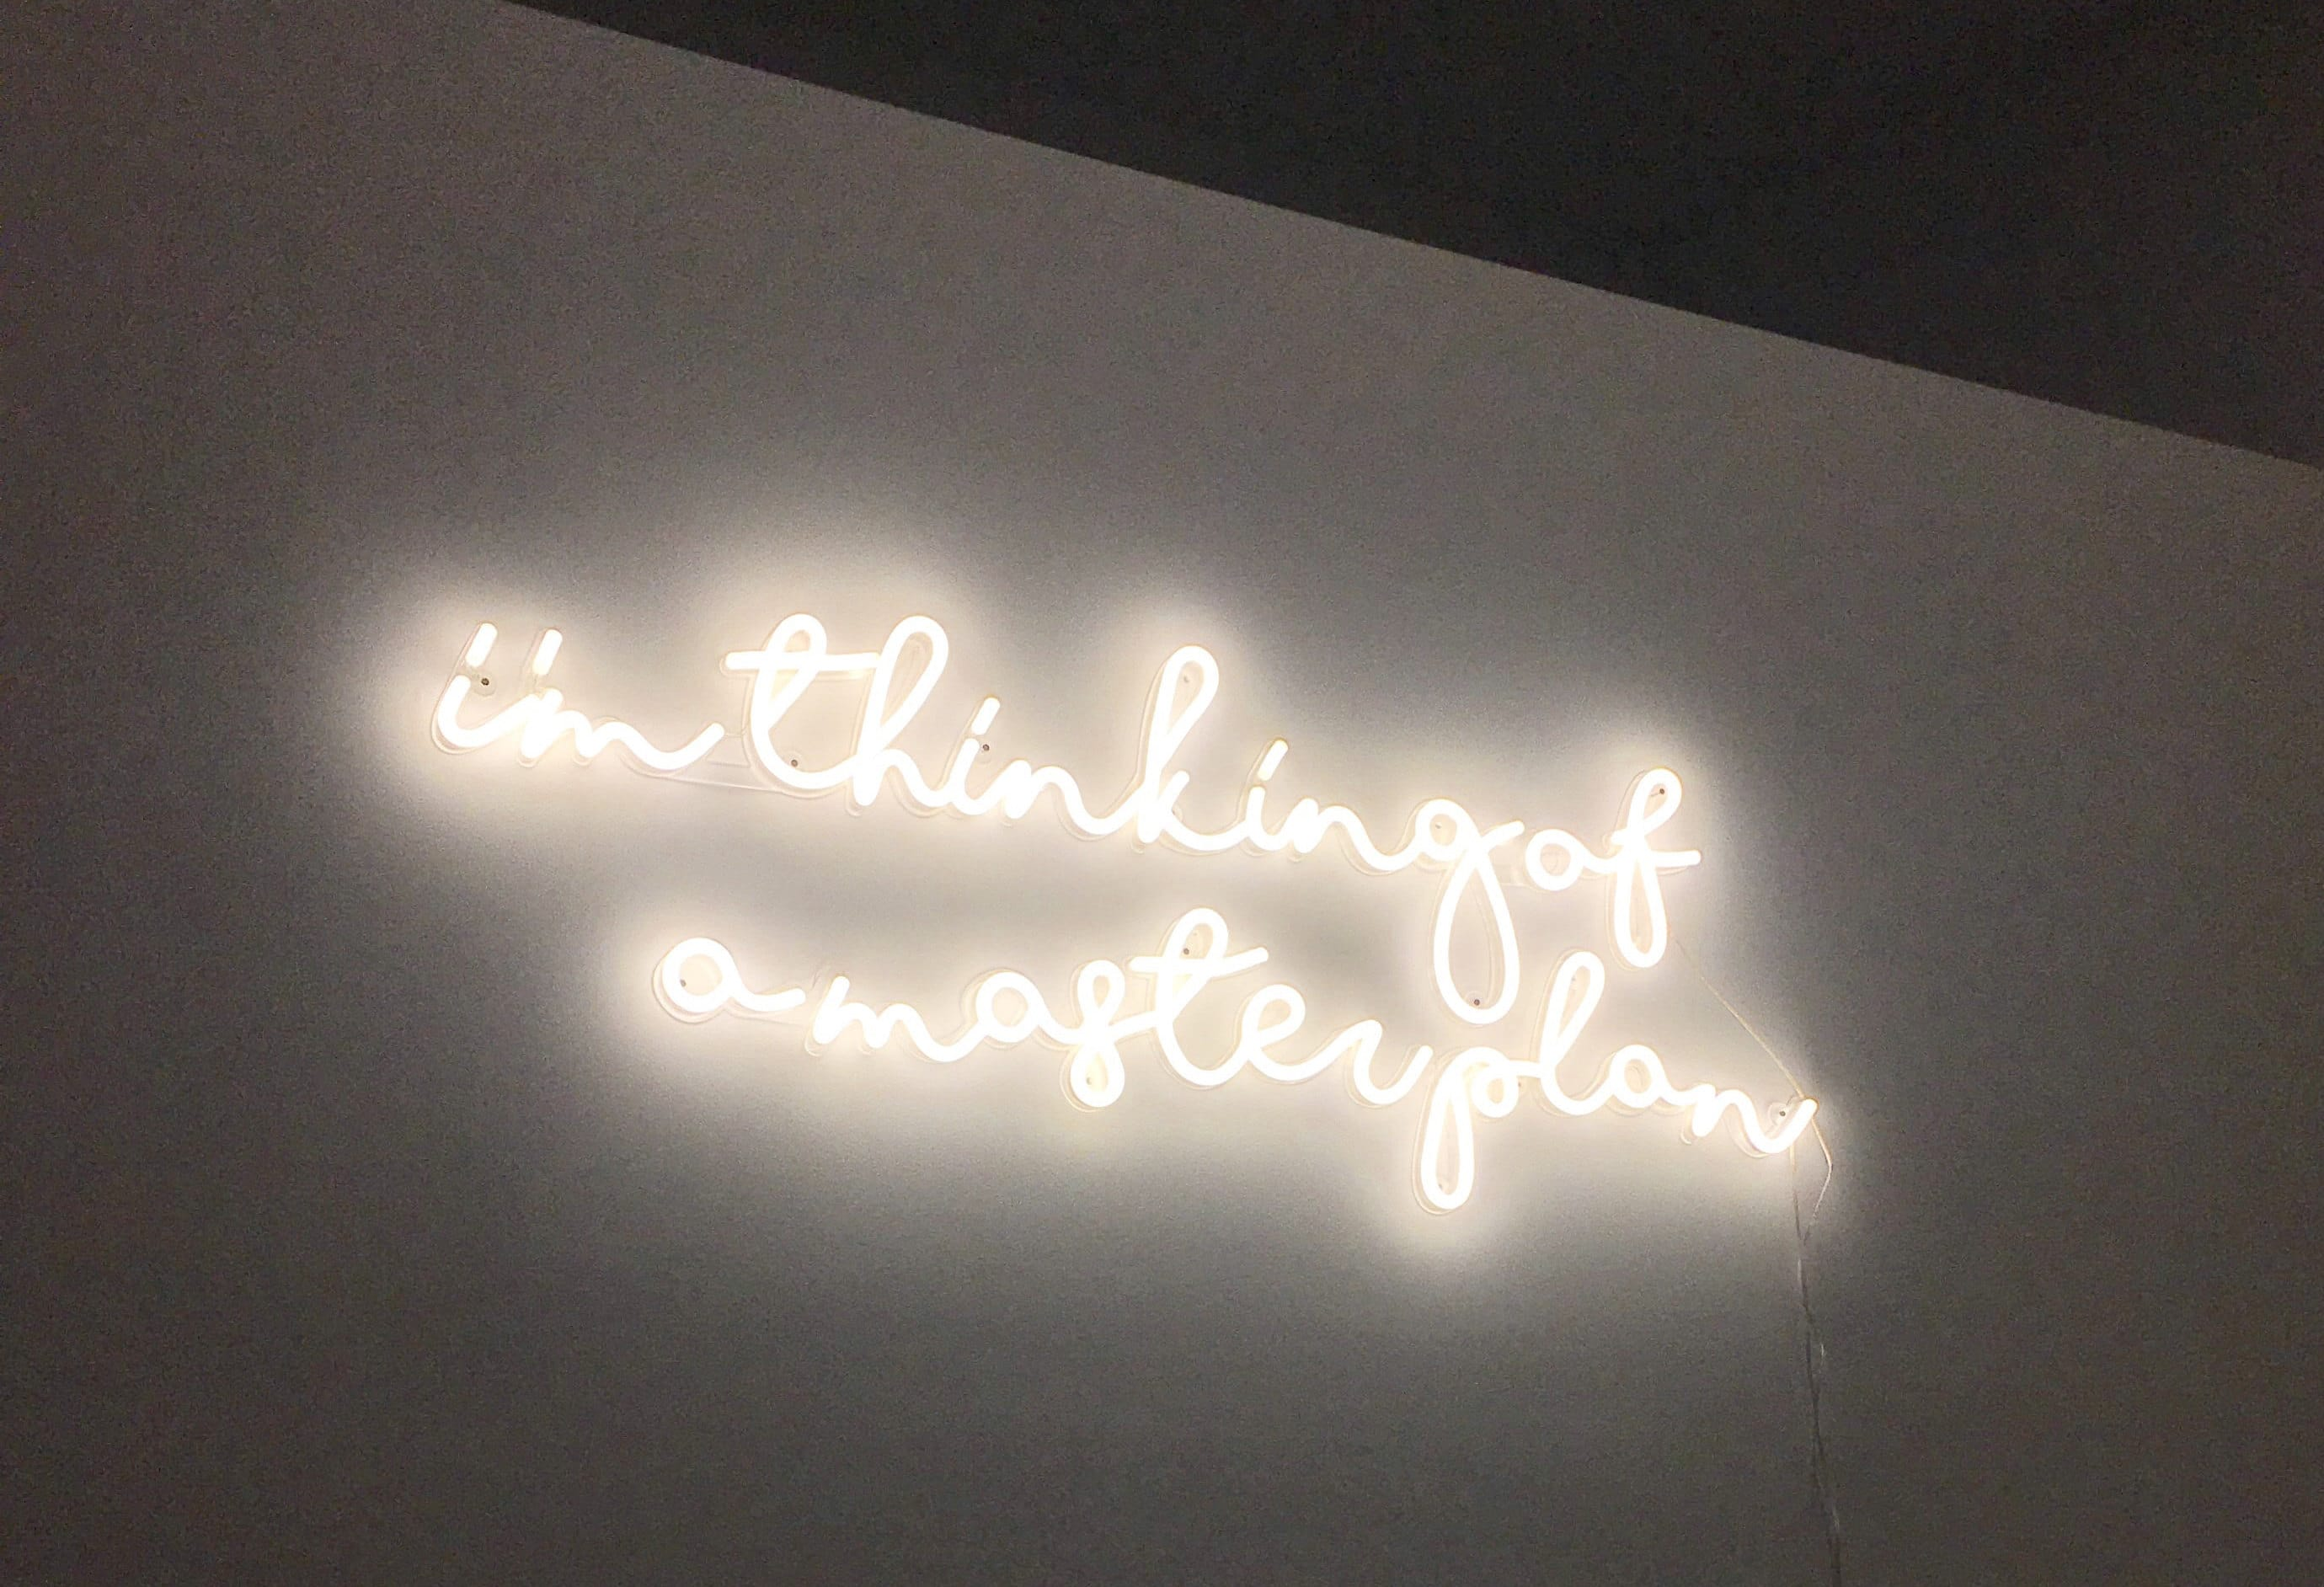 i'm thinking of a master plan neon sign